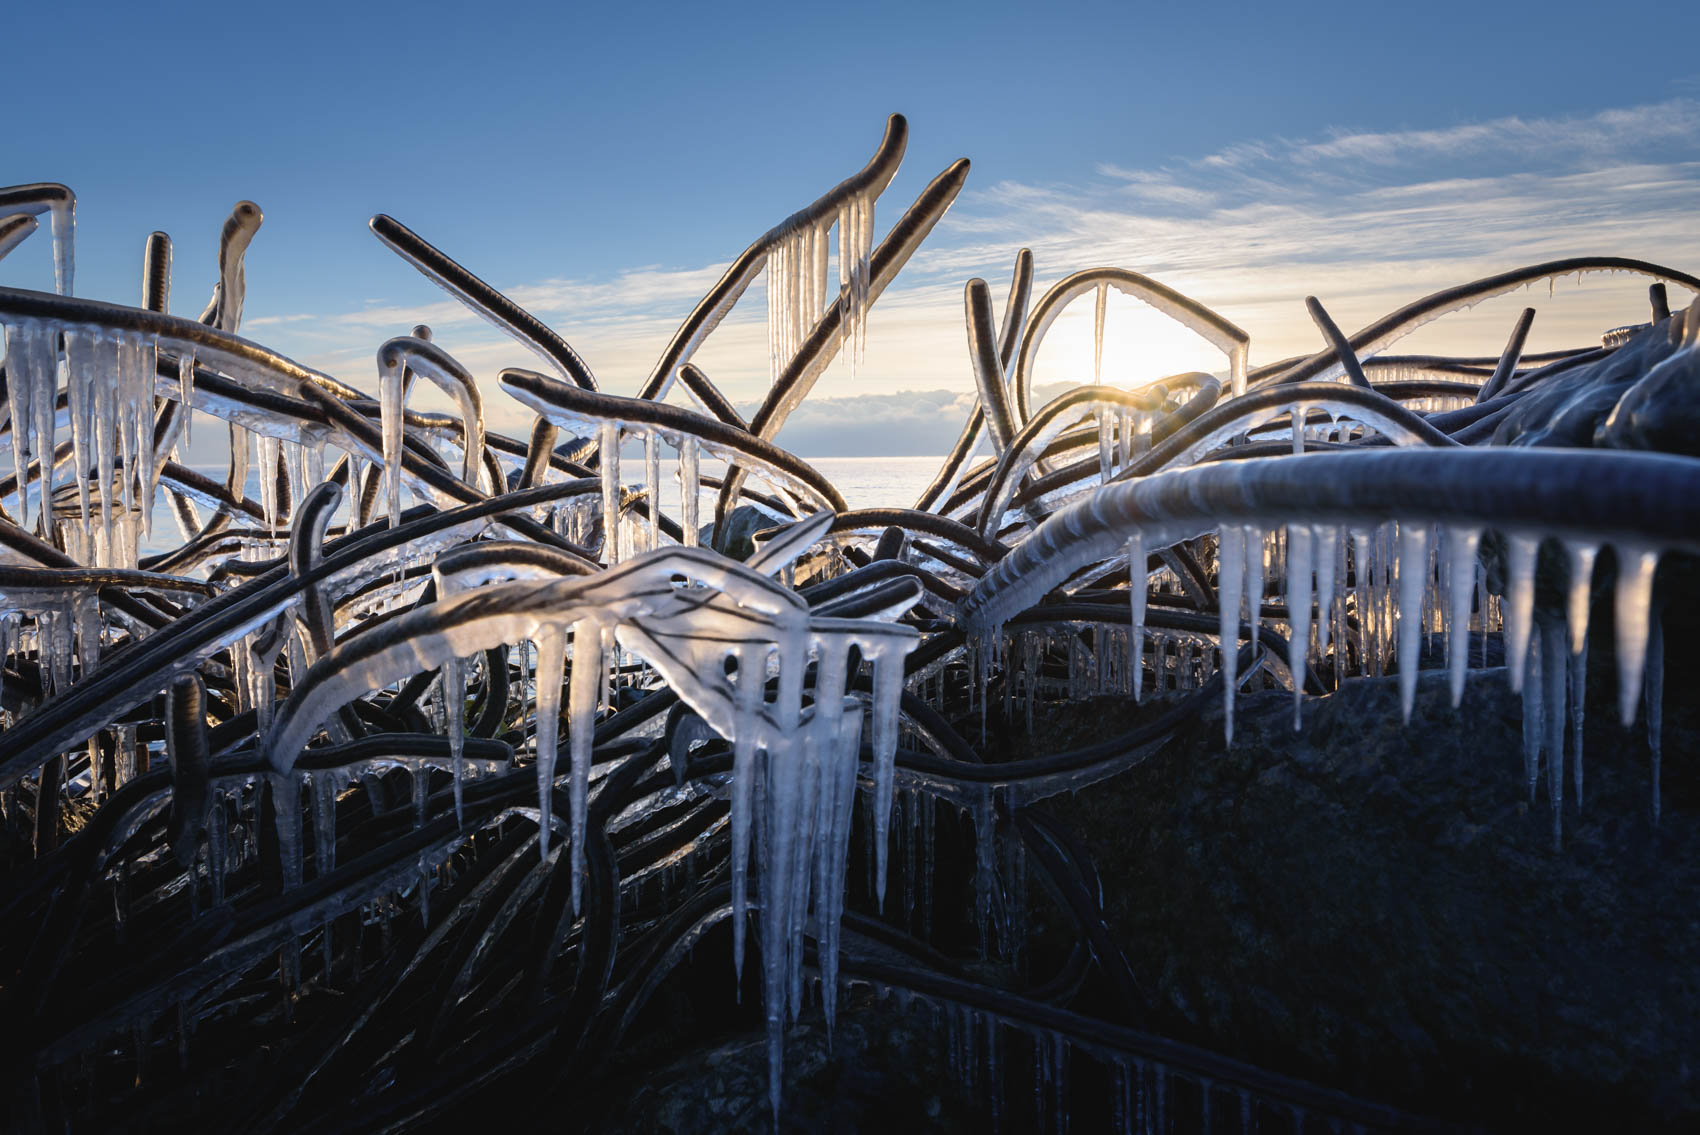 Iceicles on frozen rebar at Tommy Thompson Park in winter